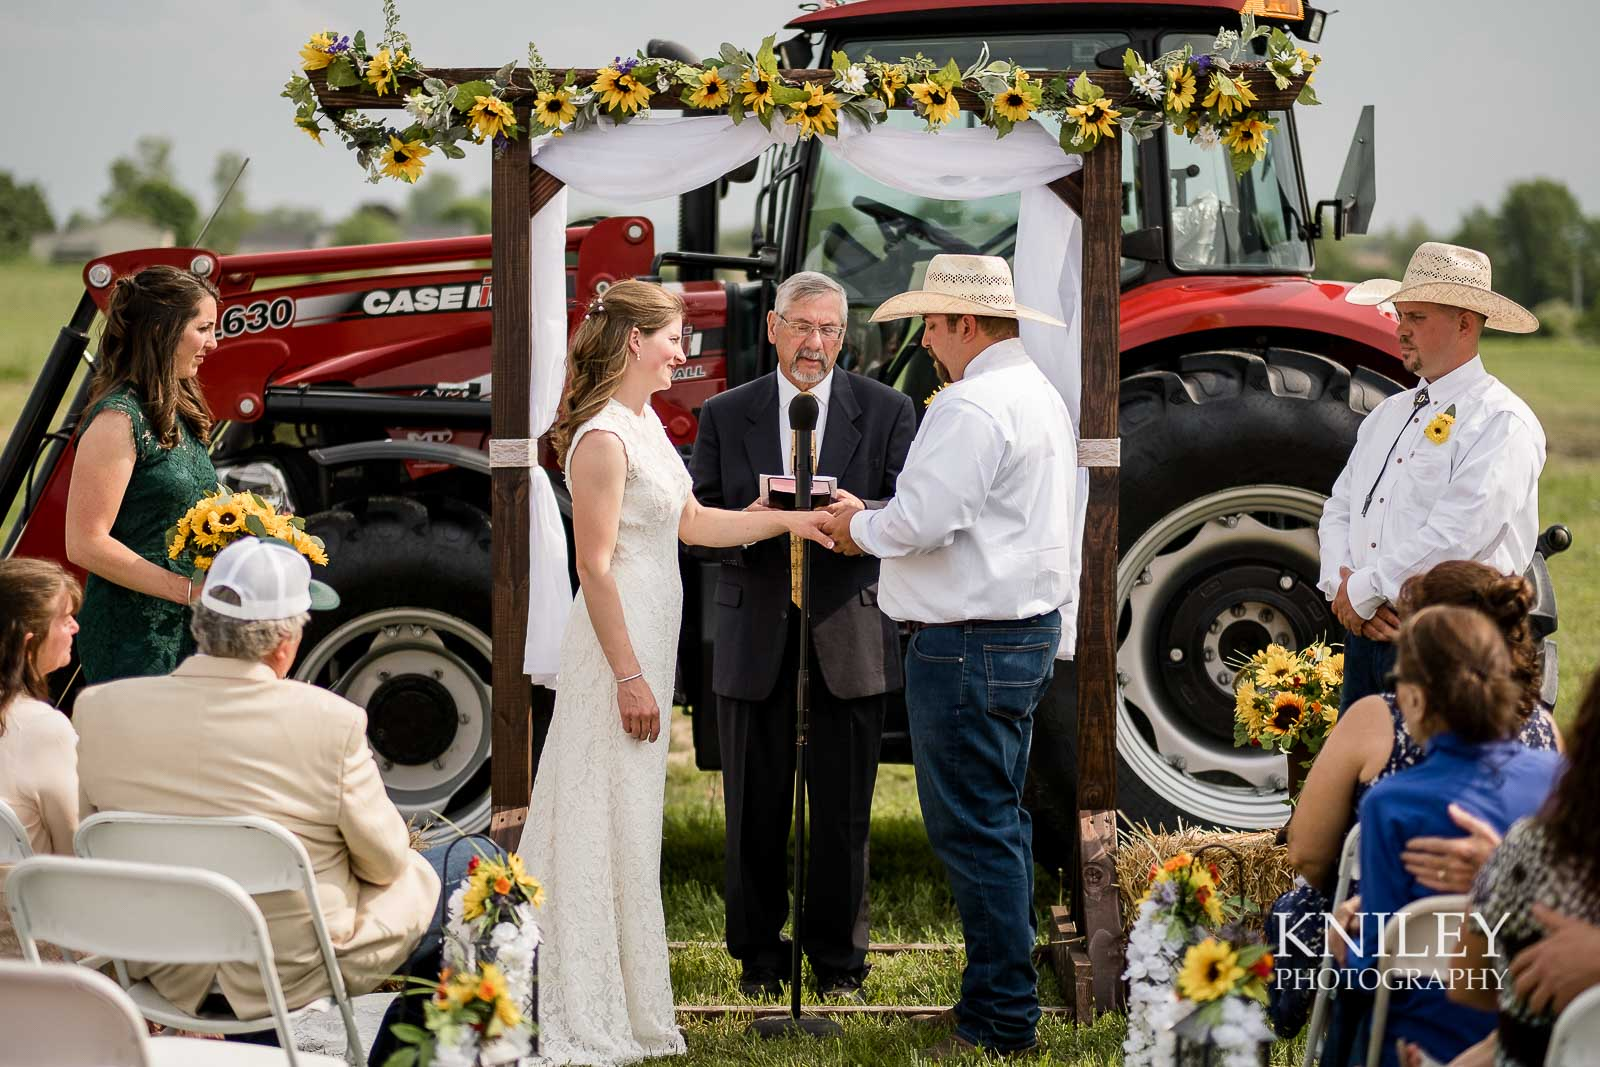 31-Western-New-York-farm-wedding-Kniley-Photography.jpg